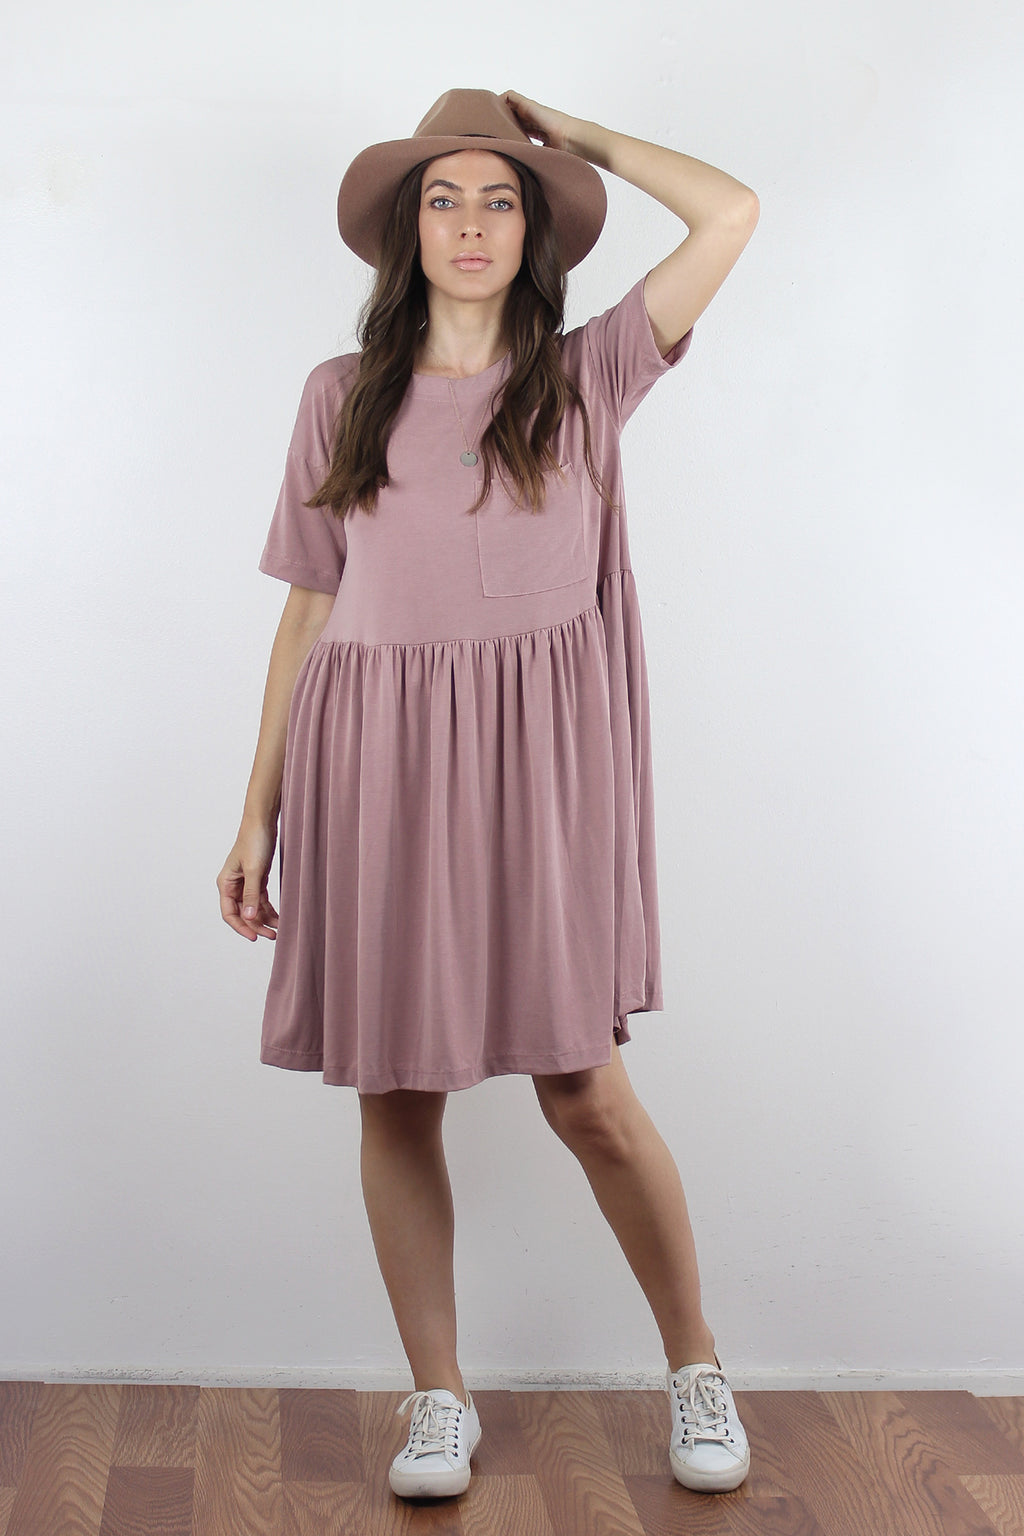 Babydoll style tee shirt dress with pocket in Pale Lilac.